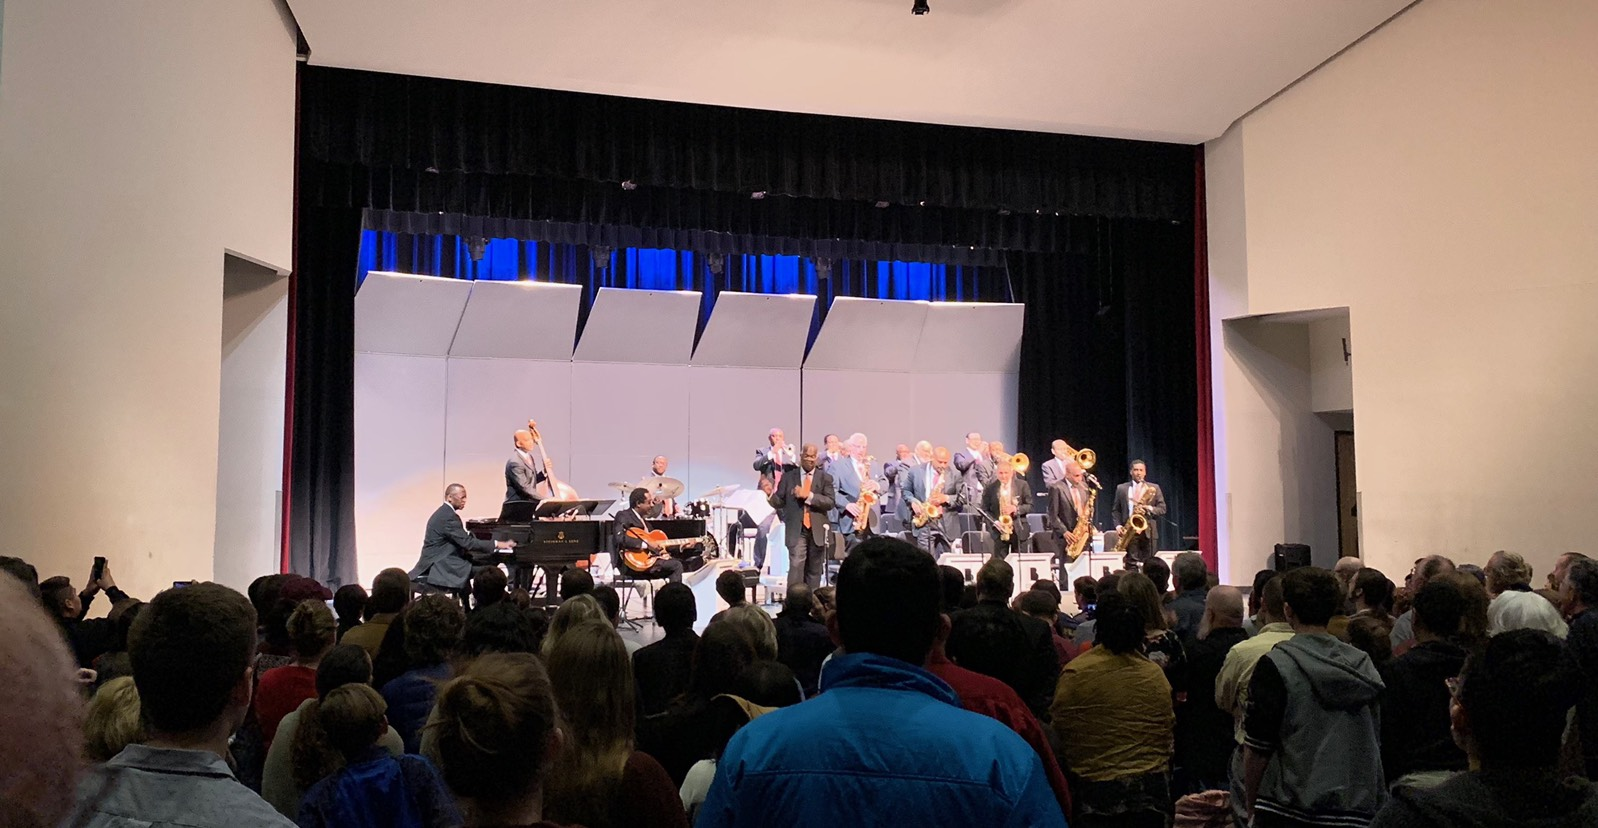 The Count Basie Orchestra playing their last song at Evans Auditorium at Texas State University with the crowd standing.